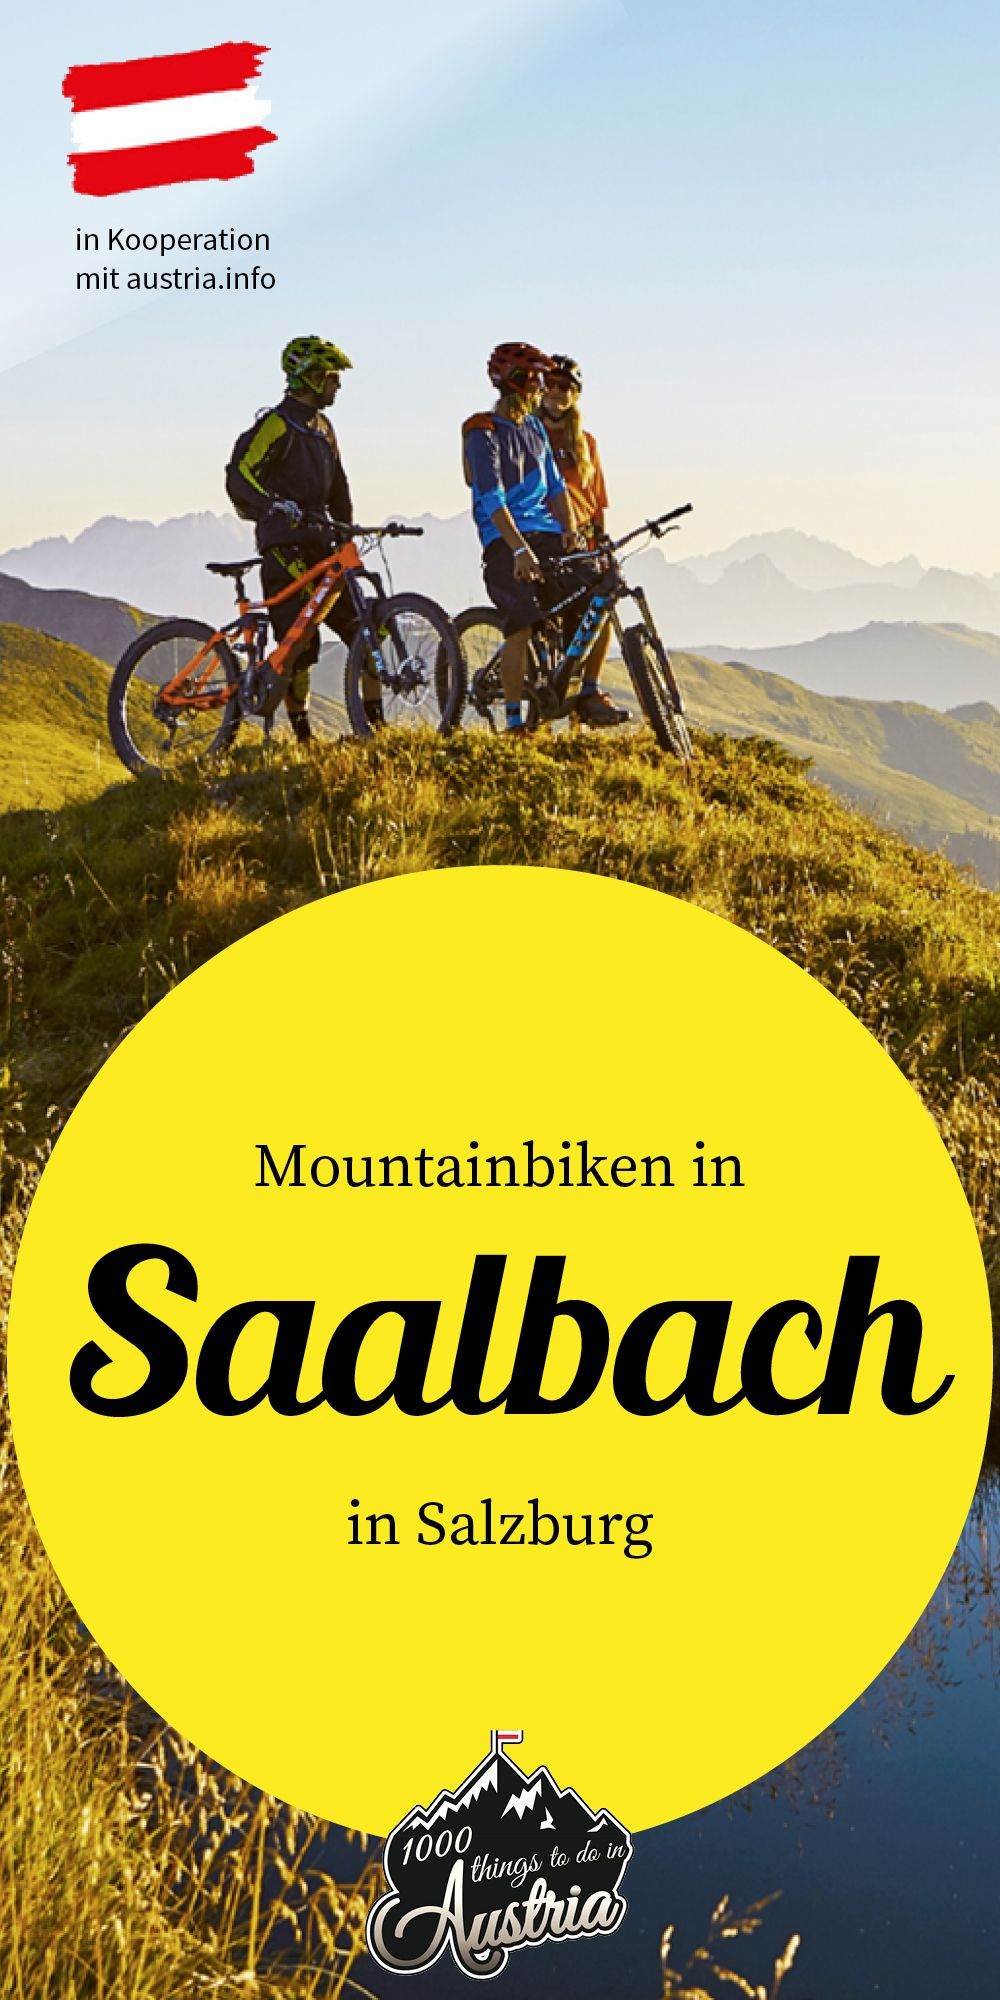 Mountainbiken in den Pinzgauer Alpen: Big 5 in Saalbach